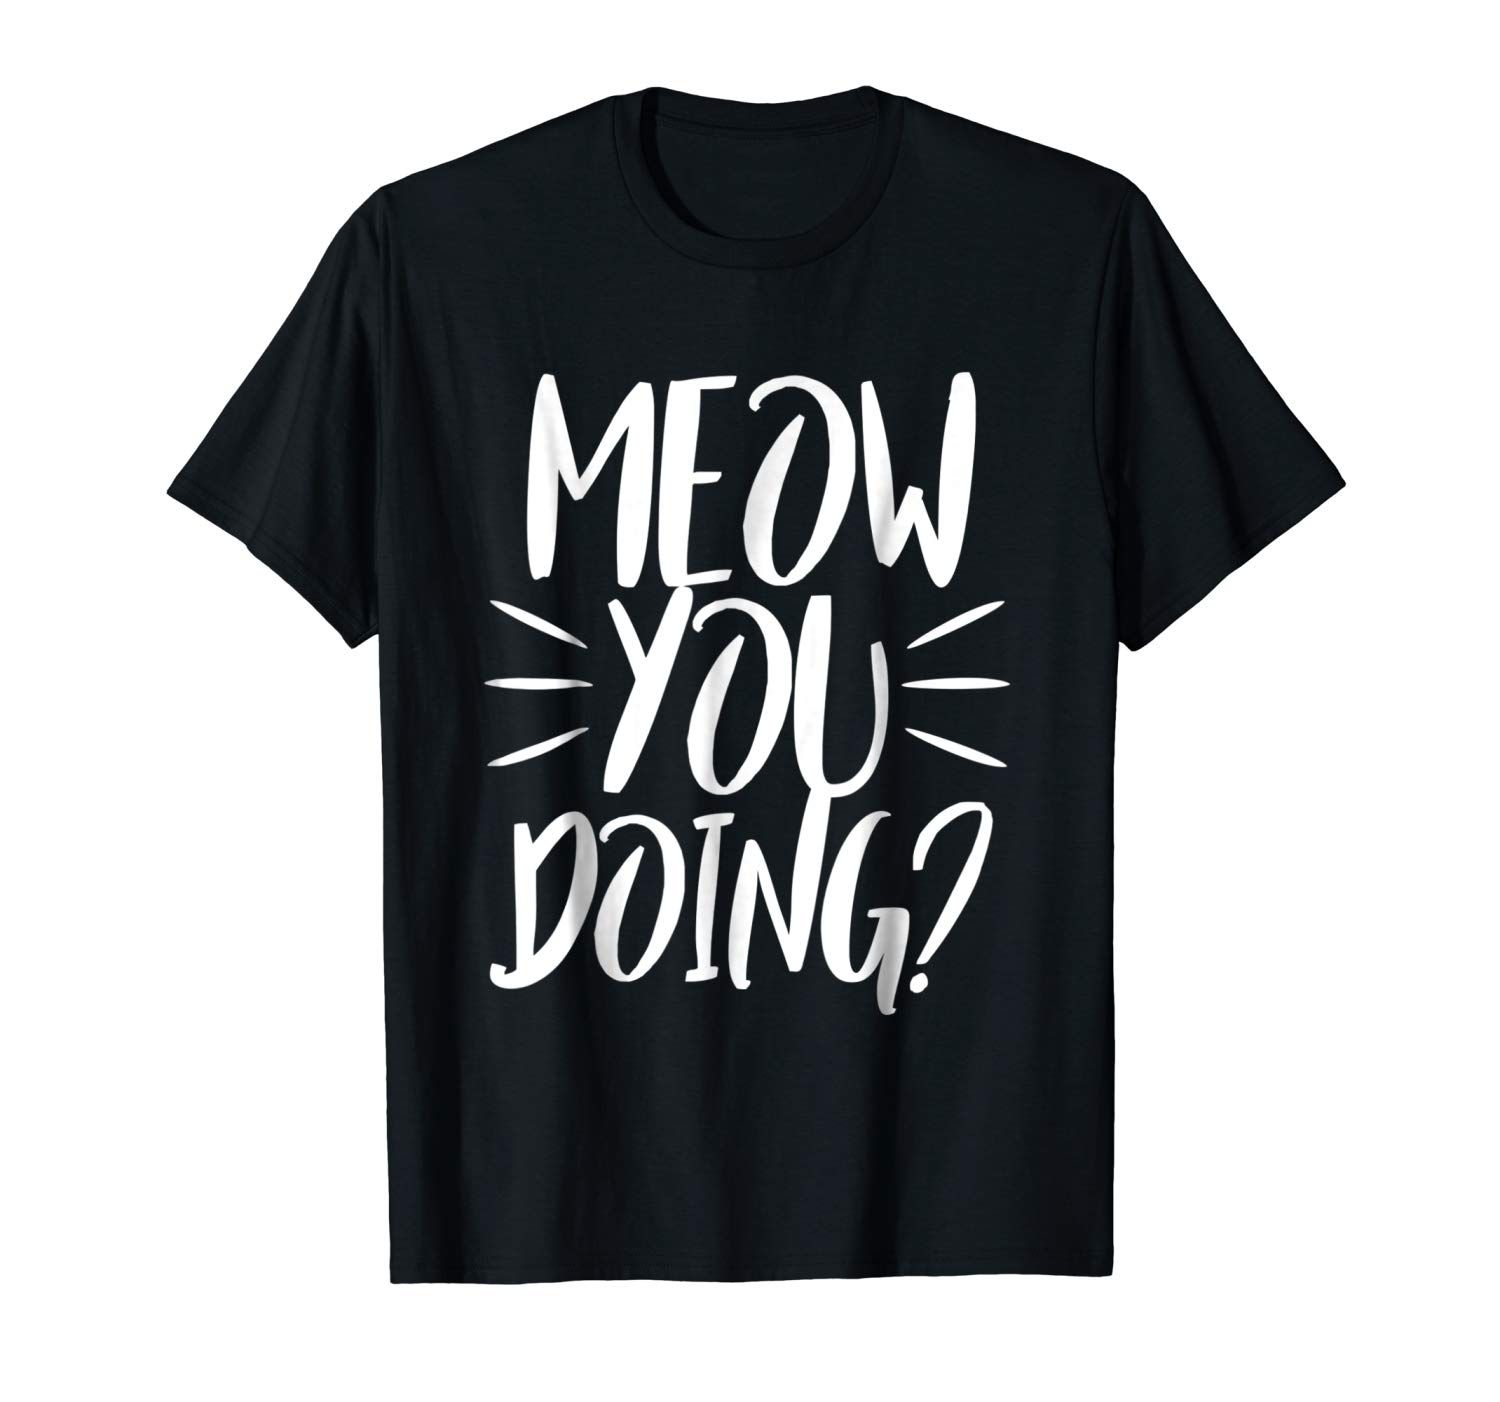 7adbe1276 Meow You Doing Funny Cat Shirts TShirt For Men Women cat t shirt for women  girls